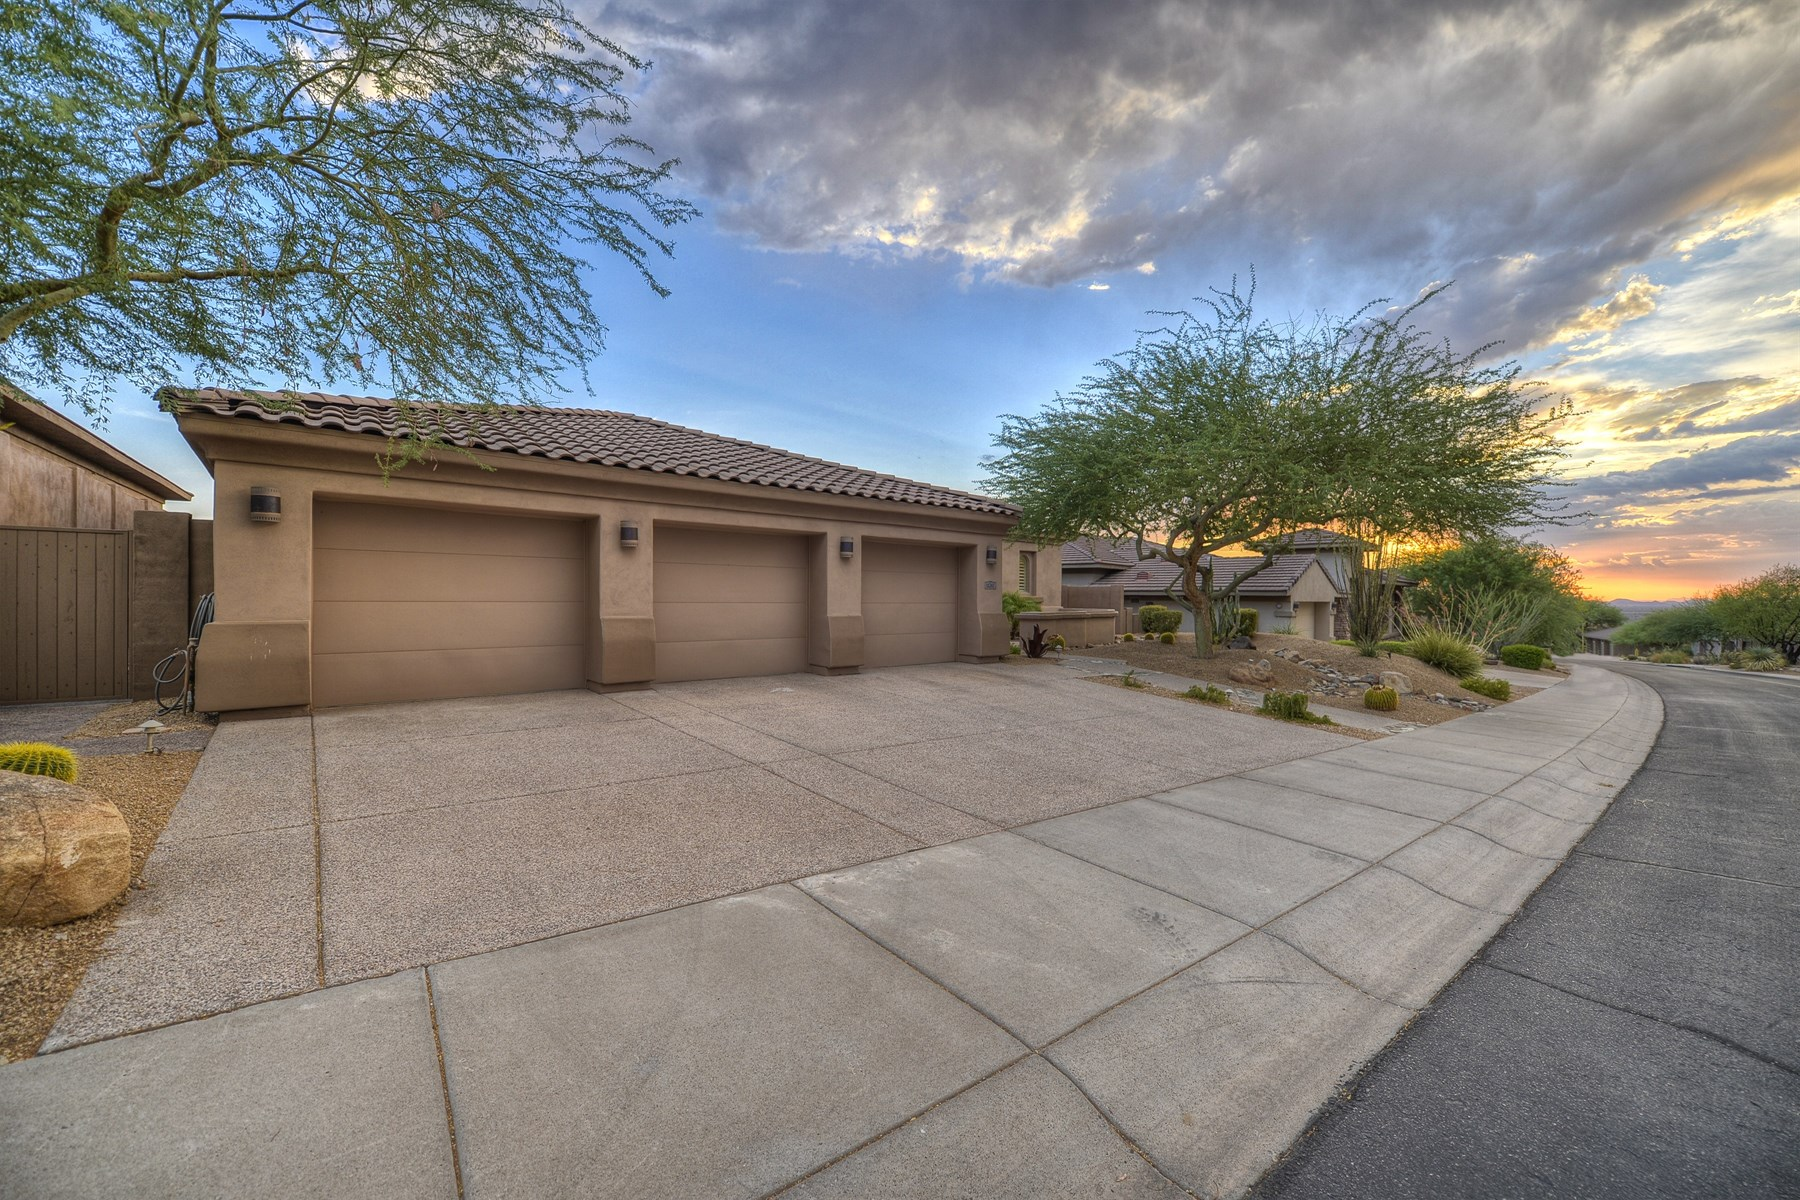 一戸建て のために 売買 アット Beautifully maintained and decorated soft contemporary home in Scottsdale 11267 E Beck Ln Scottsdale, アリゾナ, 85255 アメリカ合衆国